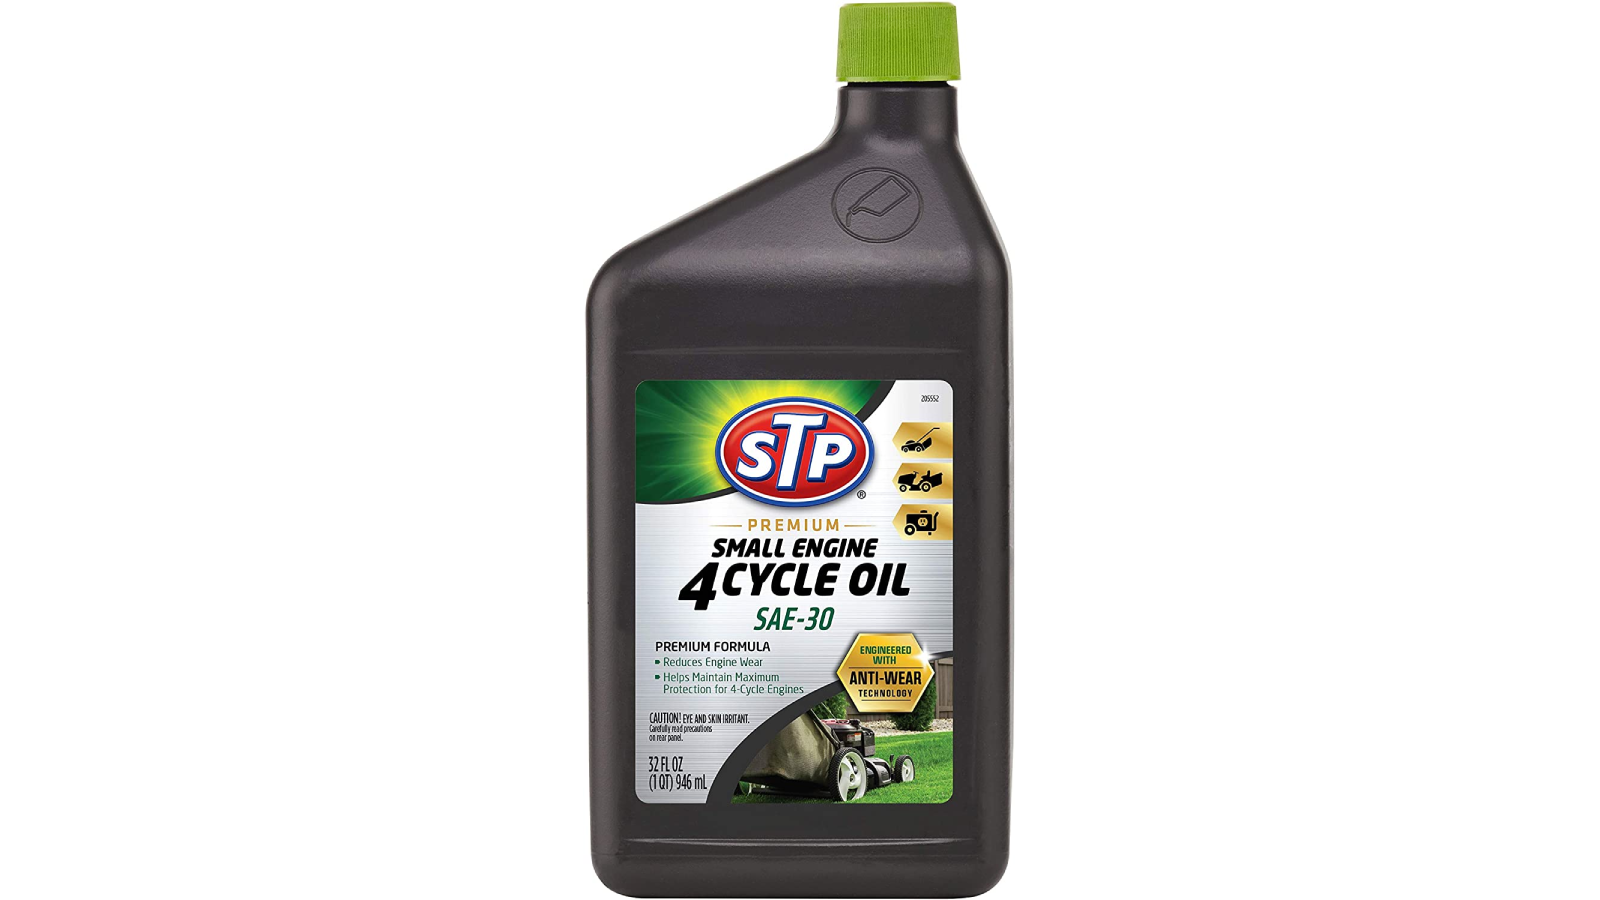 Brown bottle of STP motor oil with a green cap.